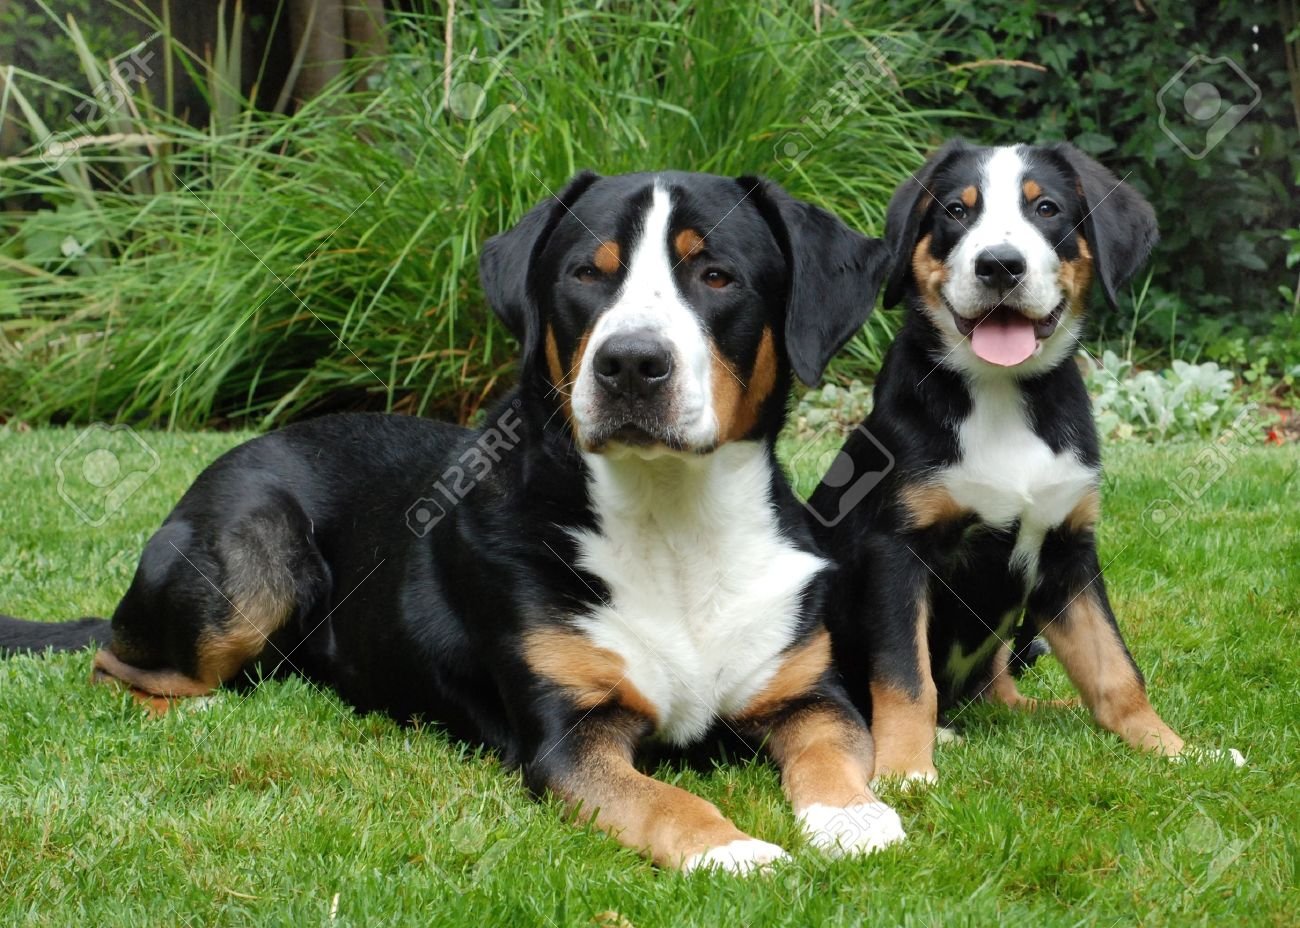 Greater Swiss Mountain Dog Adlut And Puppy Outdoor Portrait